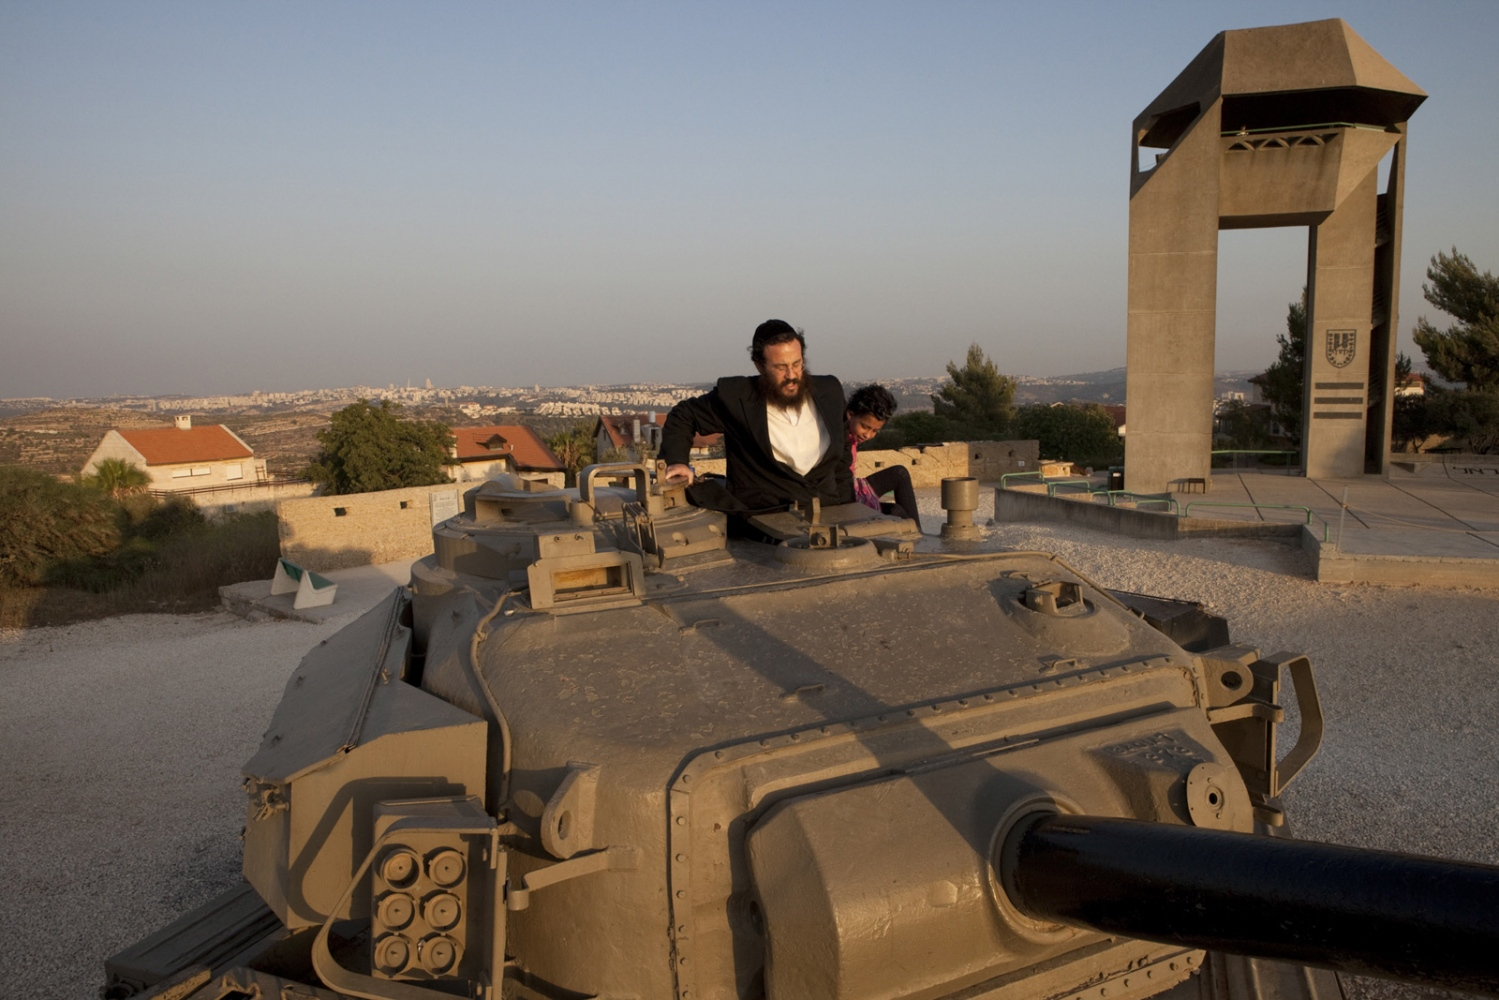 An orthodox man climbs into a tank, at a monument in the middle of the Israeli settlement of Har Adar ('the Radar' - an old British radar post). The Green Line runs between Har Adar and the Israeli villages on the Horizon.